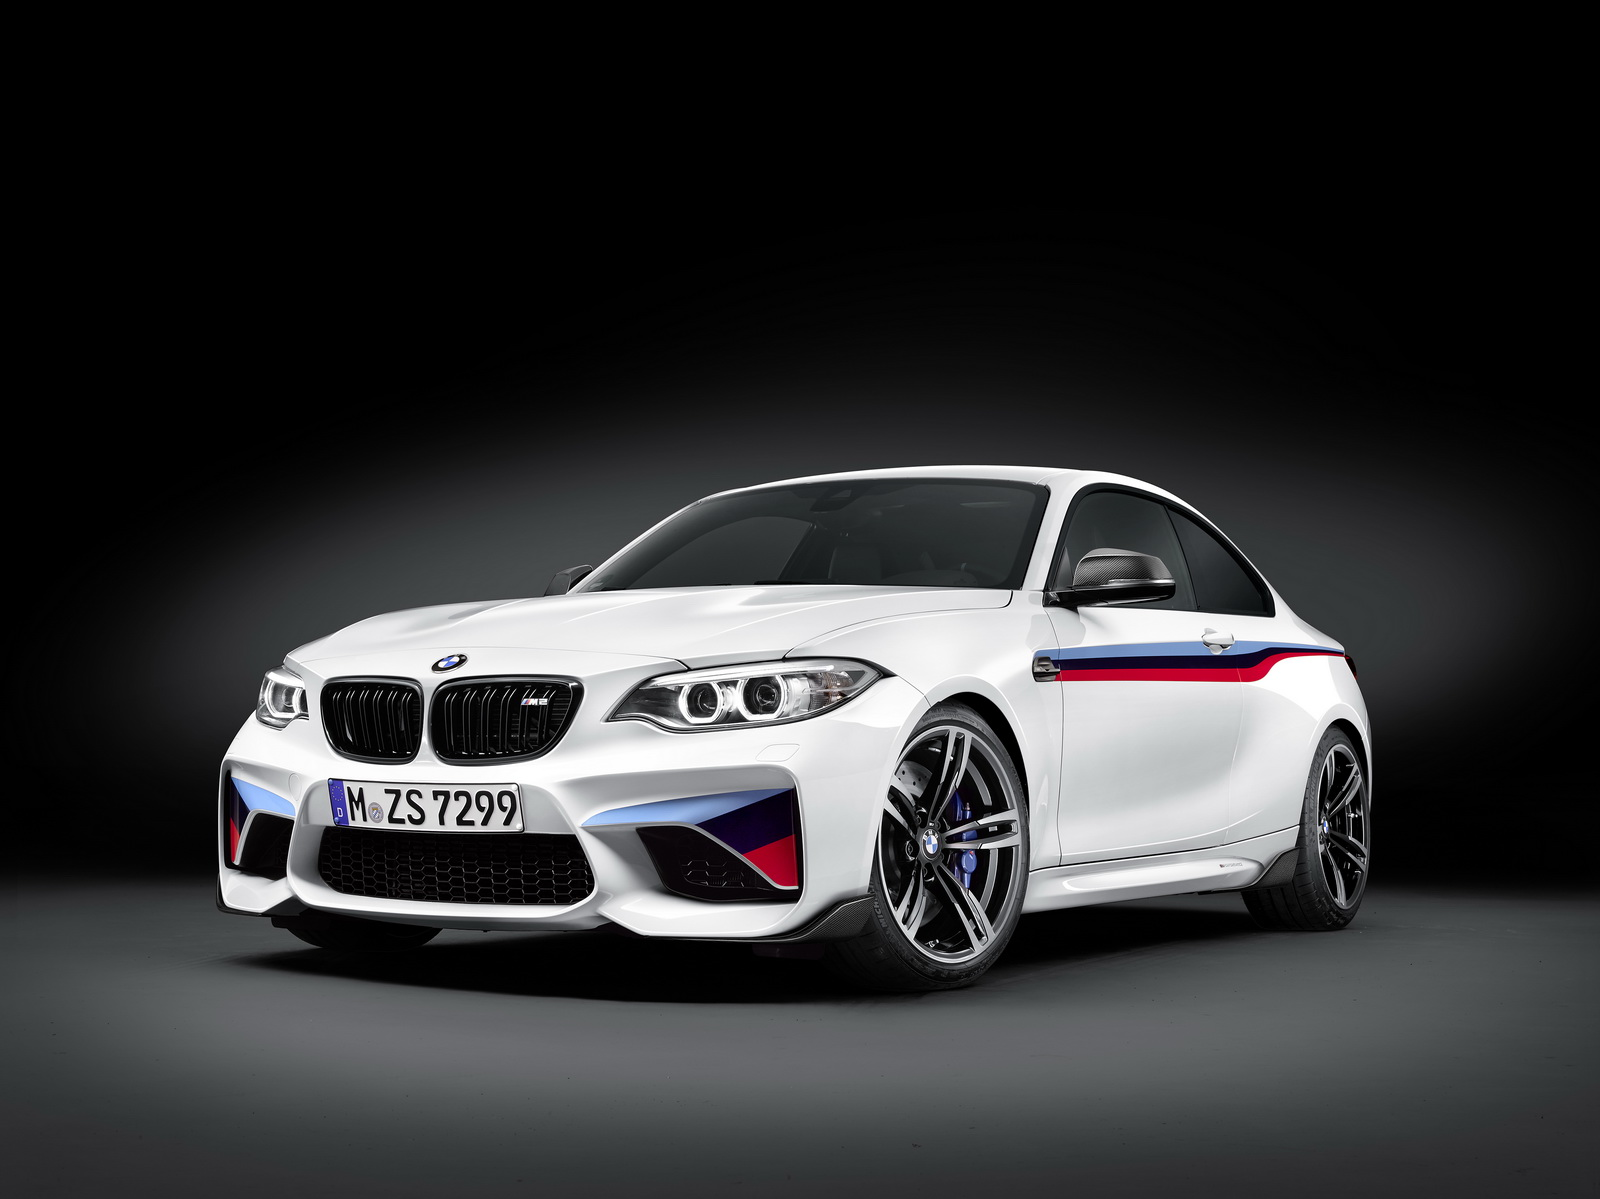 p90207893_highres_the-new-bmw-m2